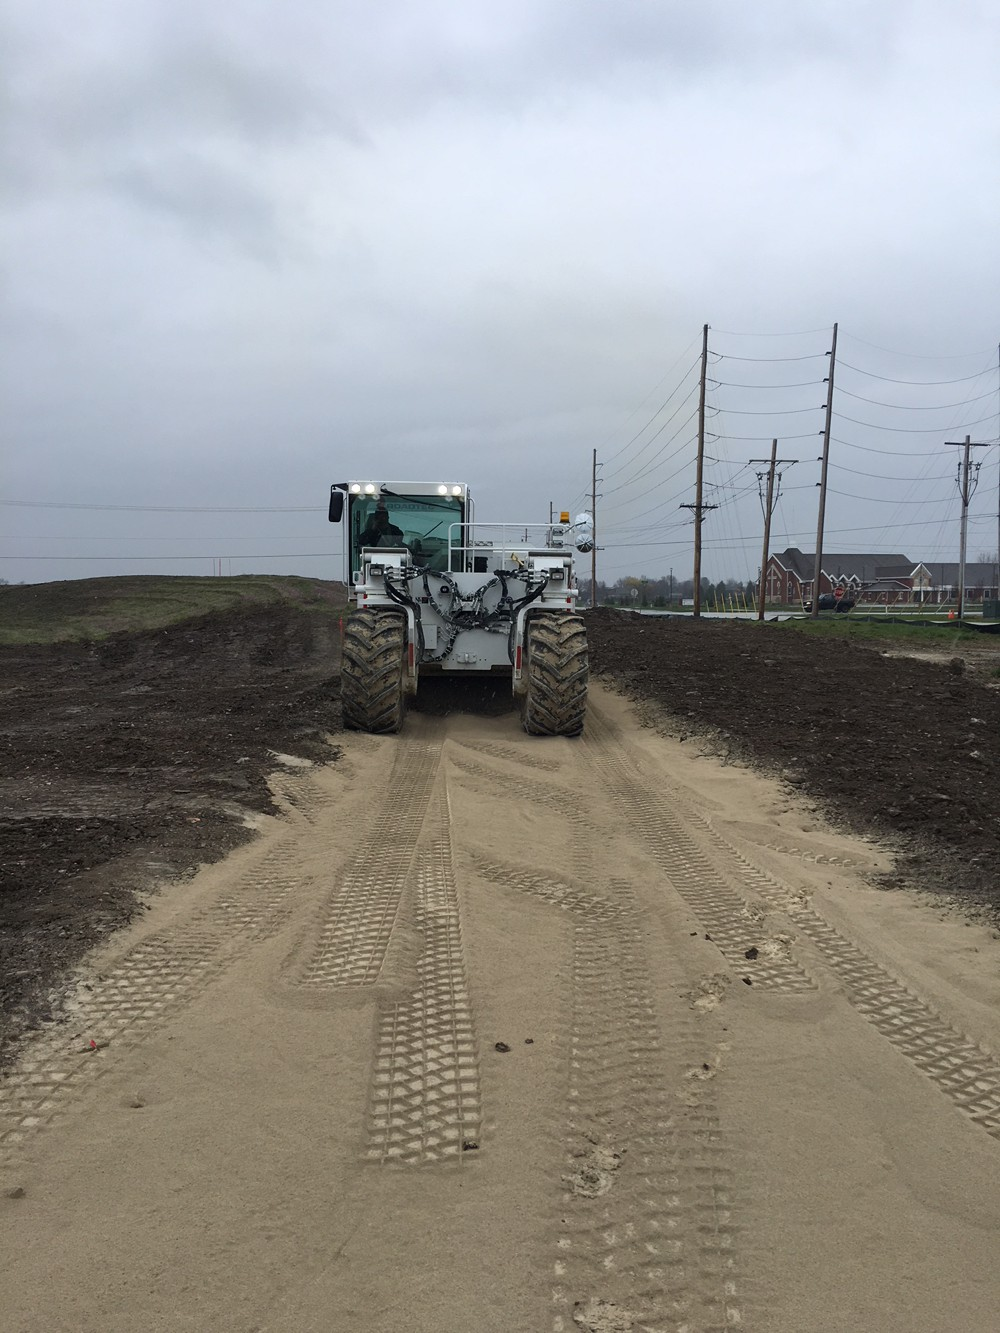 Chew It Up, Smooth It Out - Soil stabilizing made easy for warehouse build site